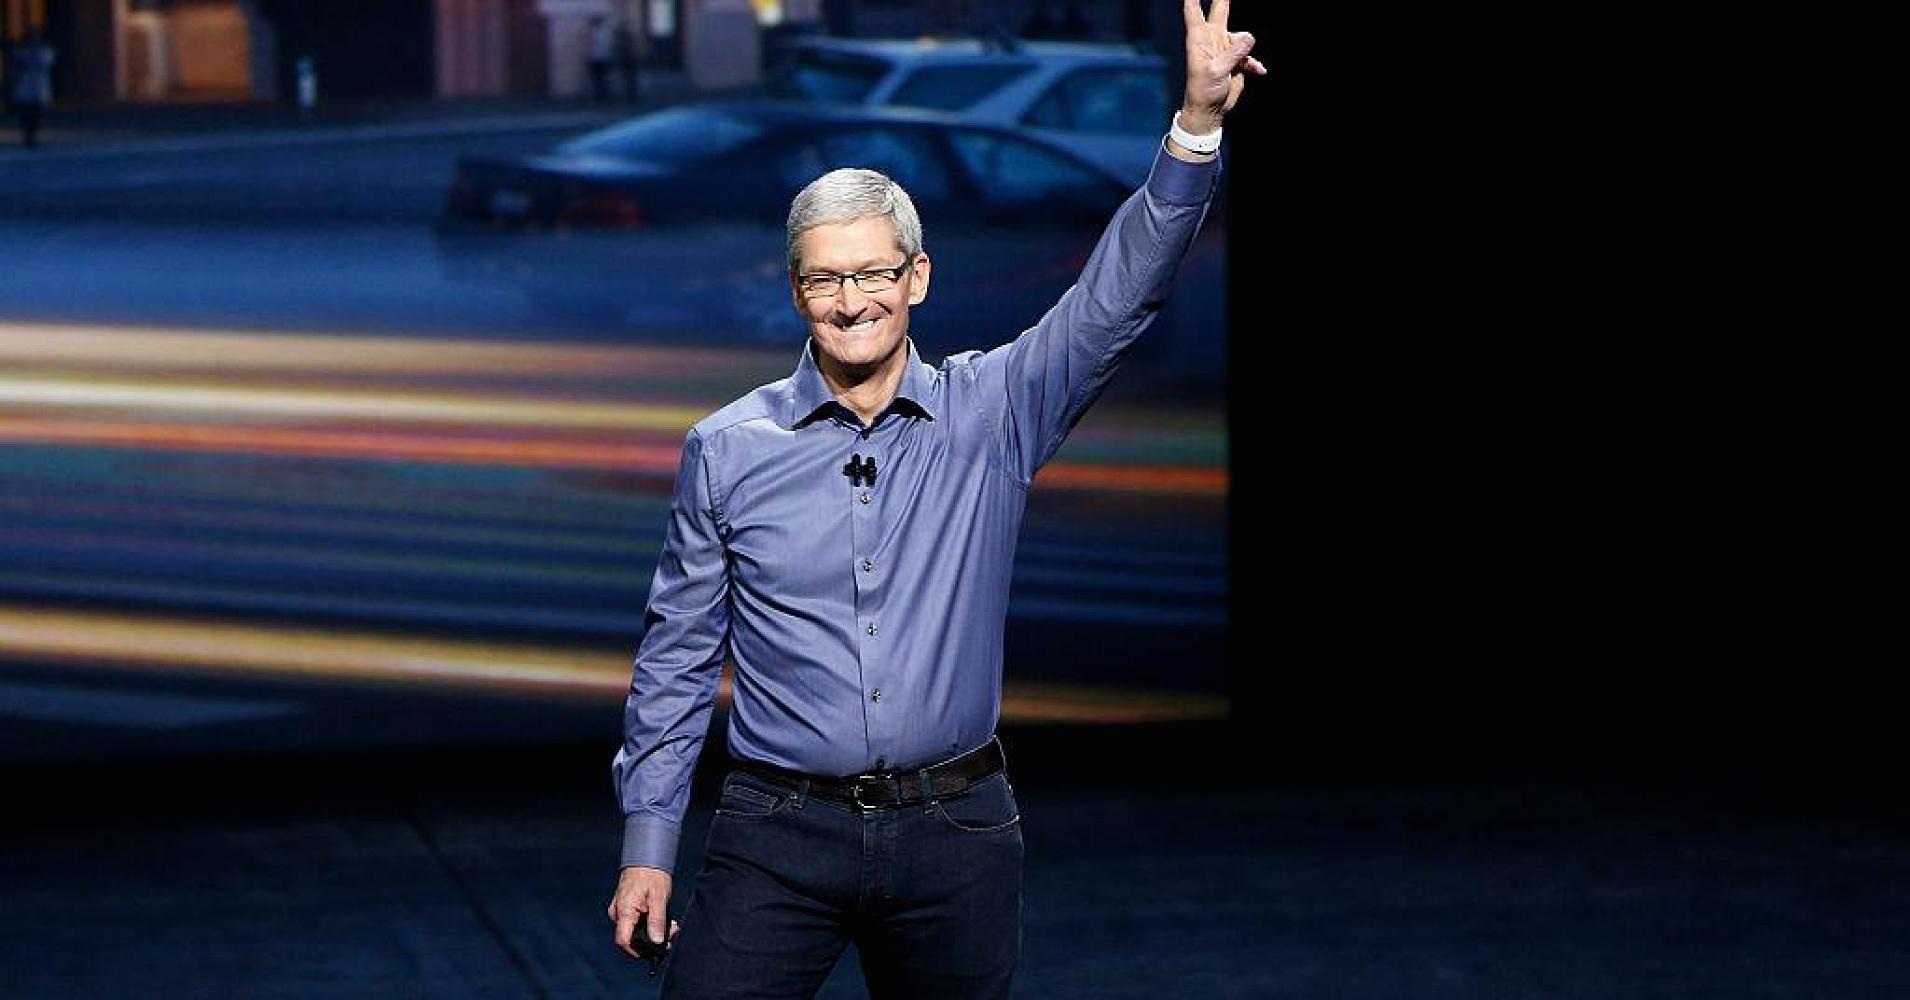 Apple CEO Tim Cook: I saw an iPhone in a 346-year-old painting